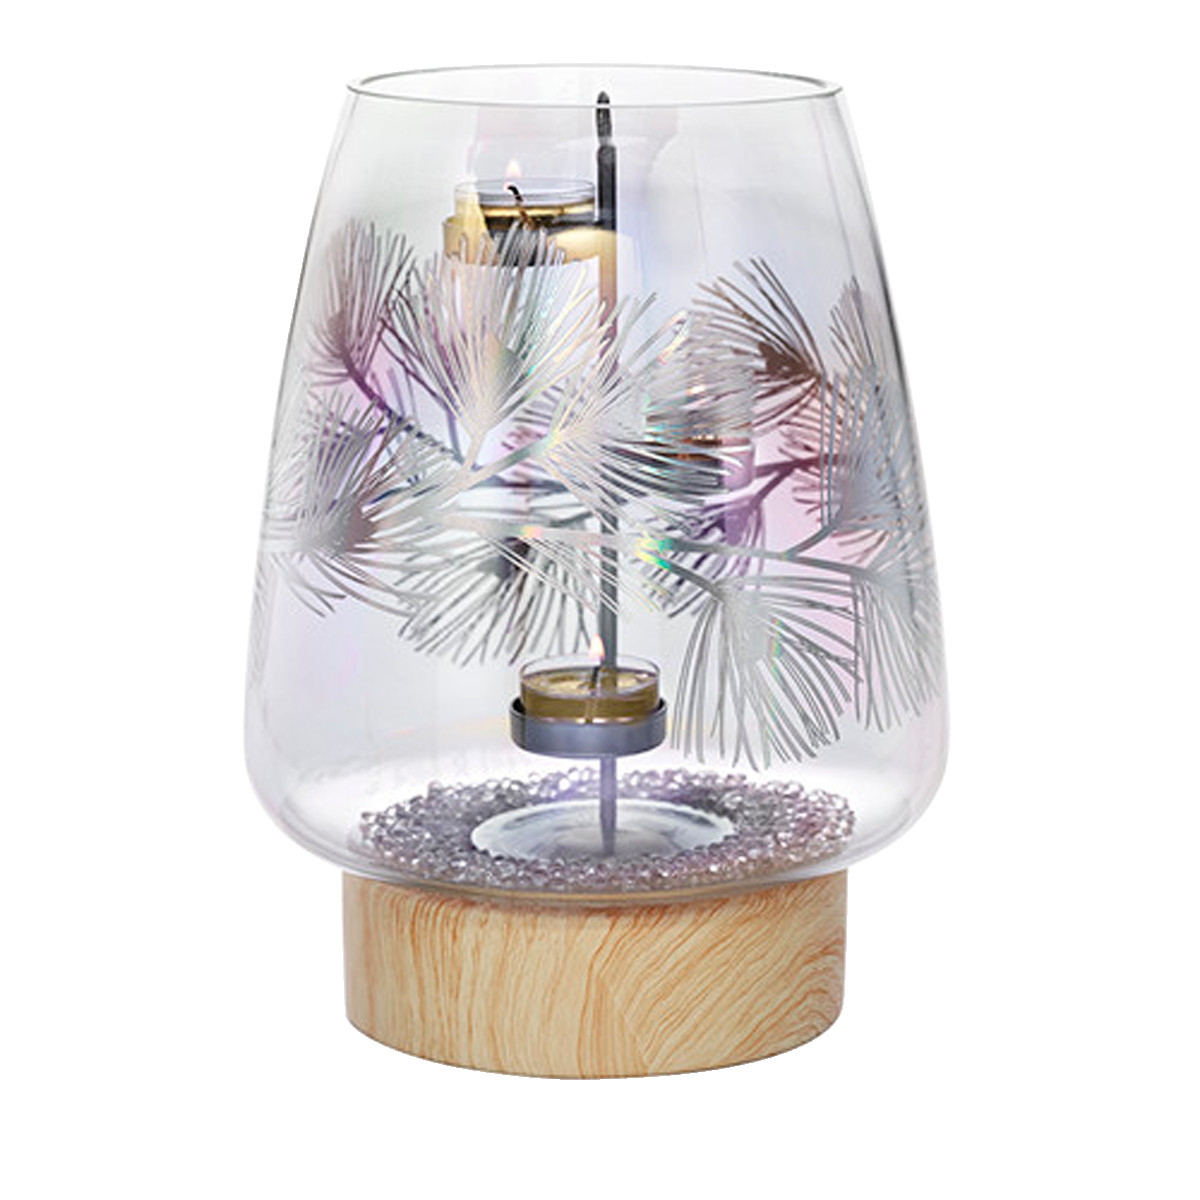 Partylite Hurricane Vase Of Lustrous Pine Hurricane with Fh18 P93142 Web